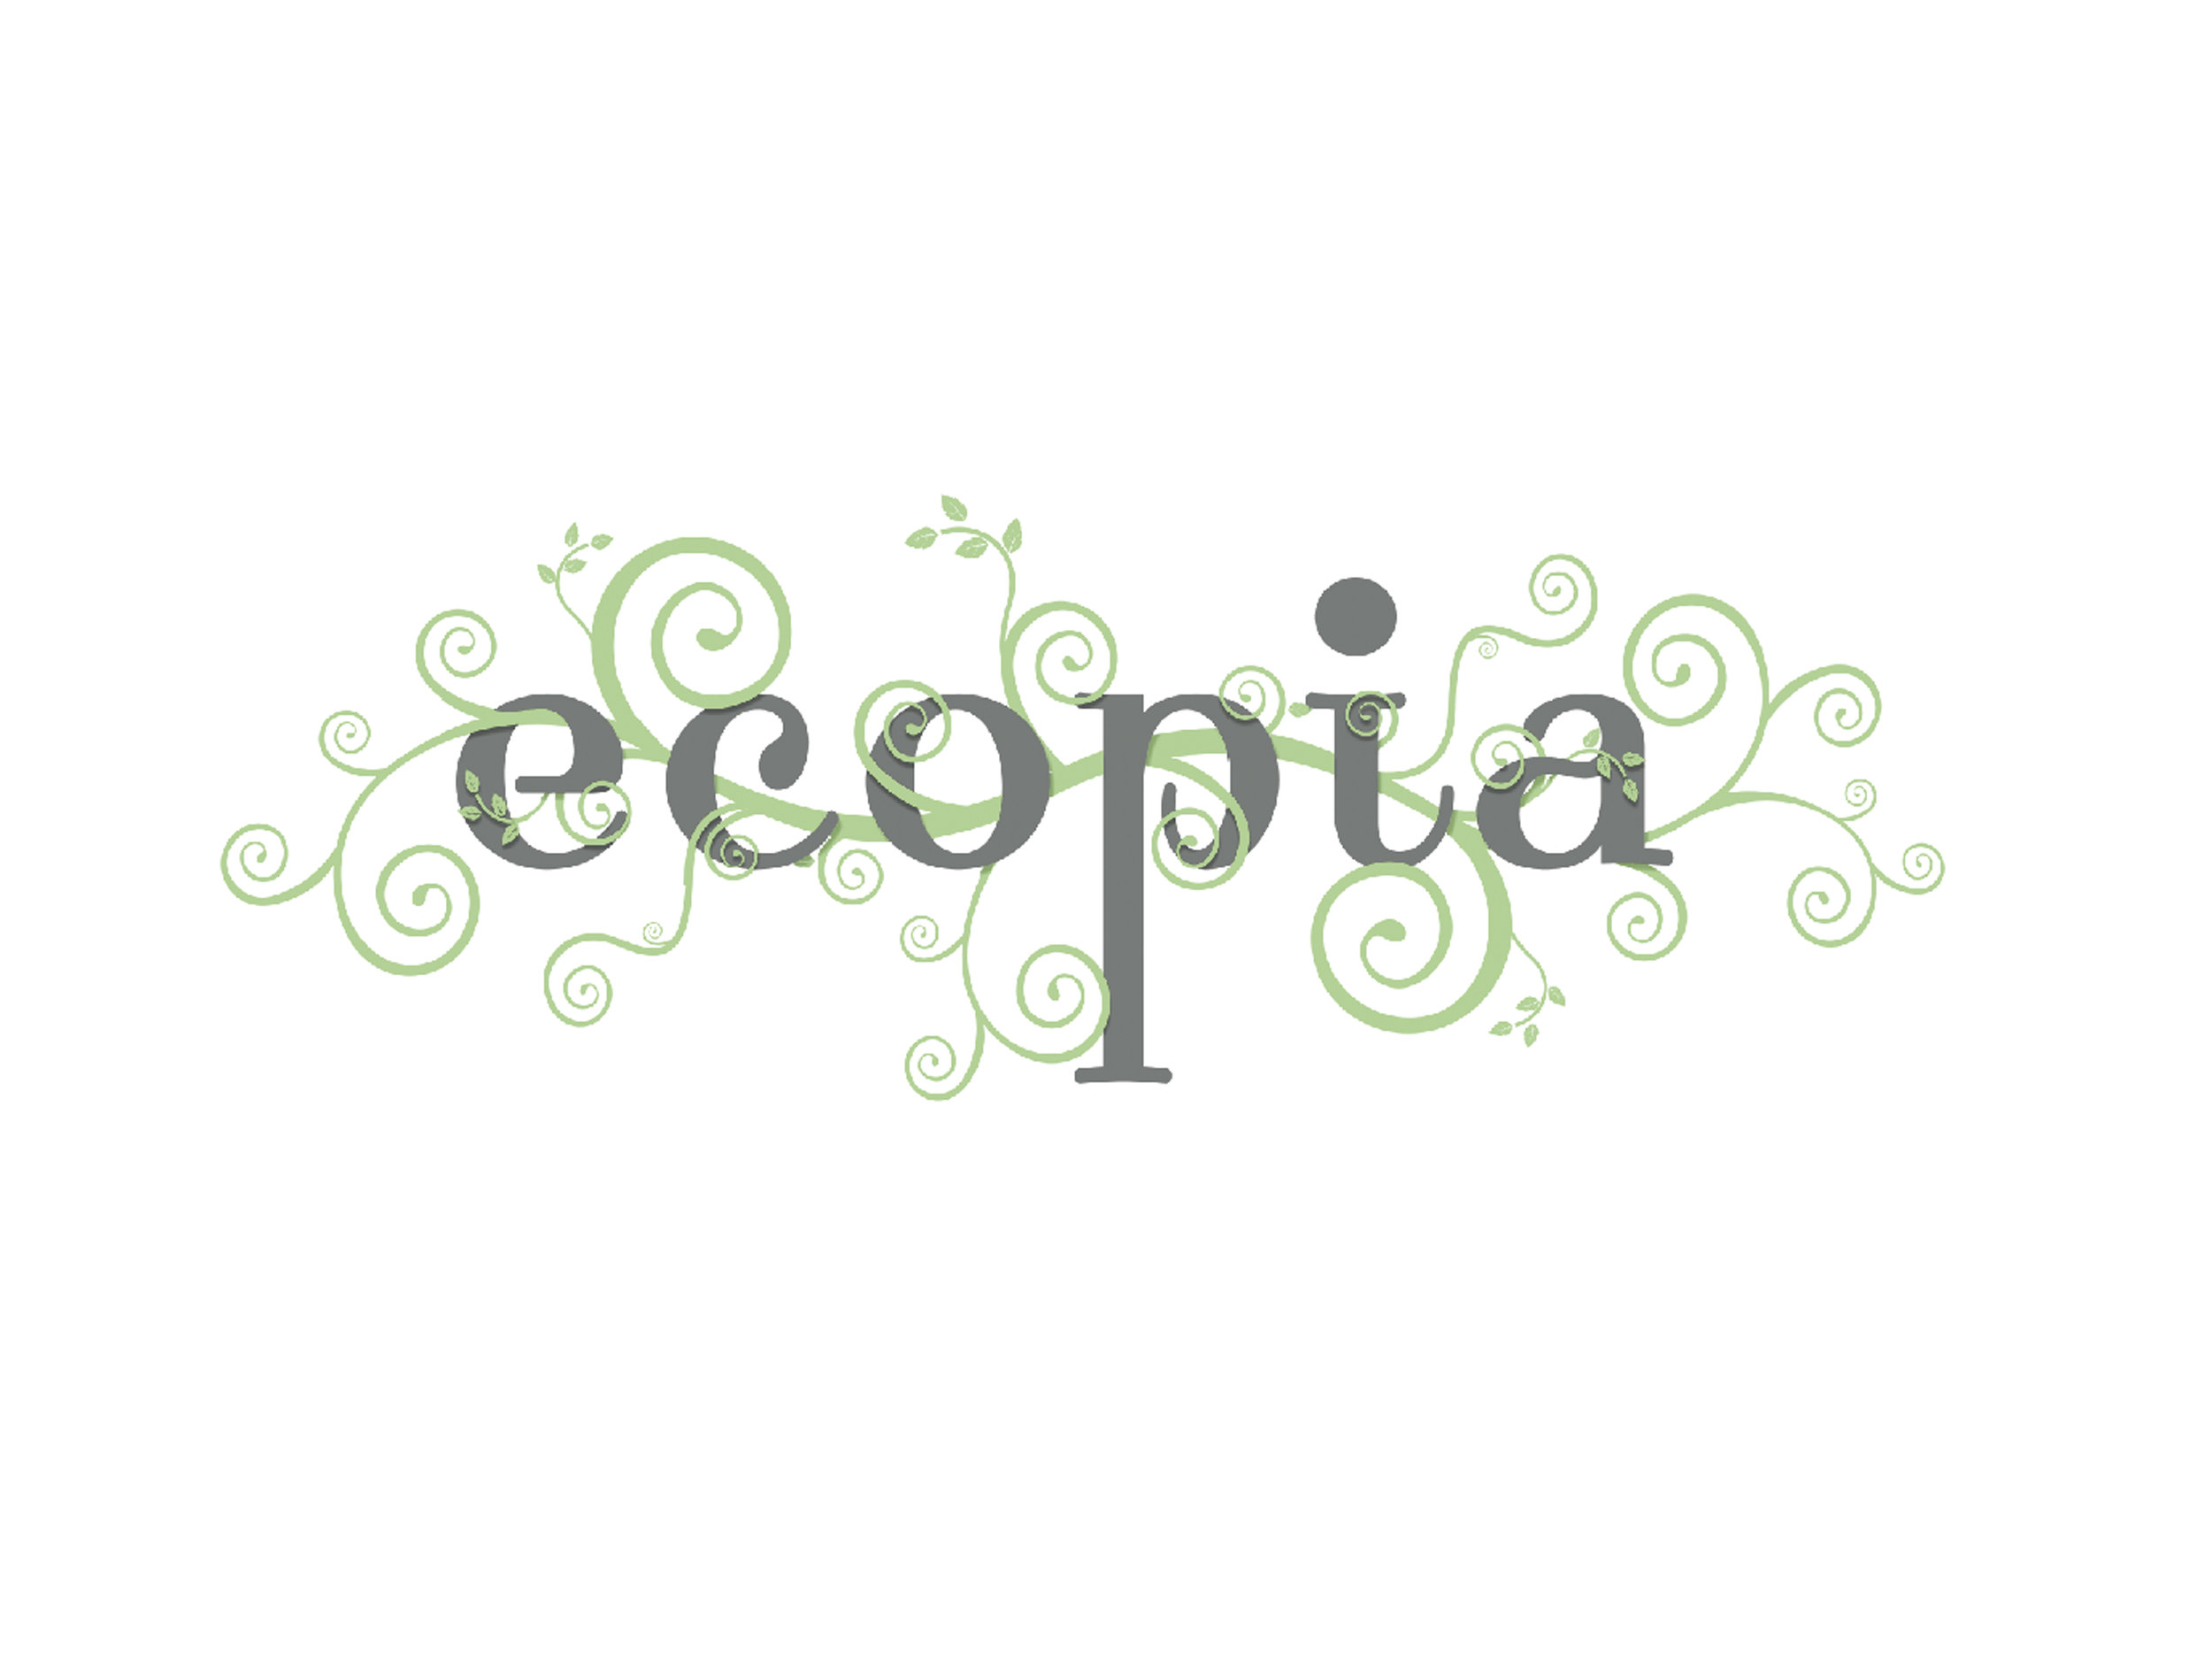 CLICK HERE TO SEE OTHER ASSETS THAT WHOVILLE HAS CREATED FOR ECOPIA